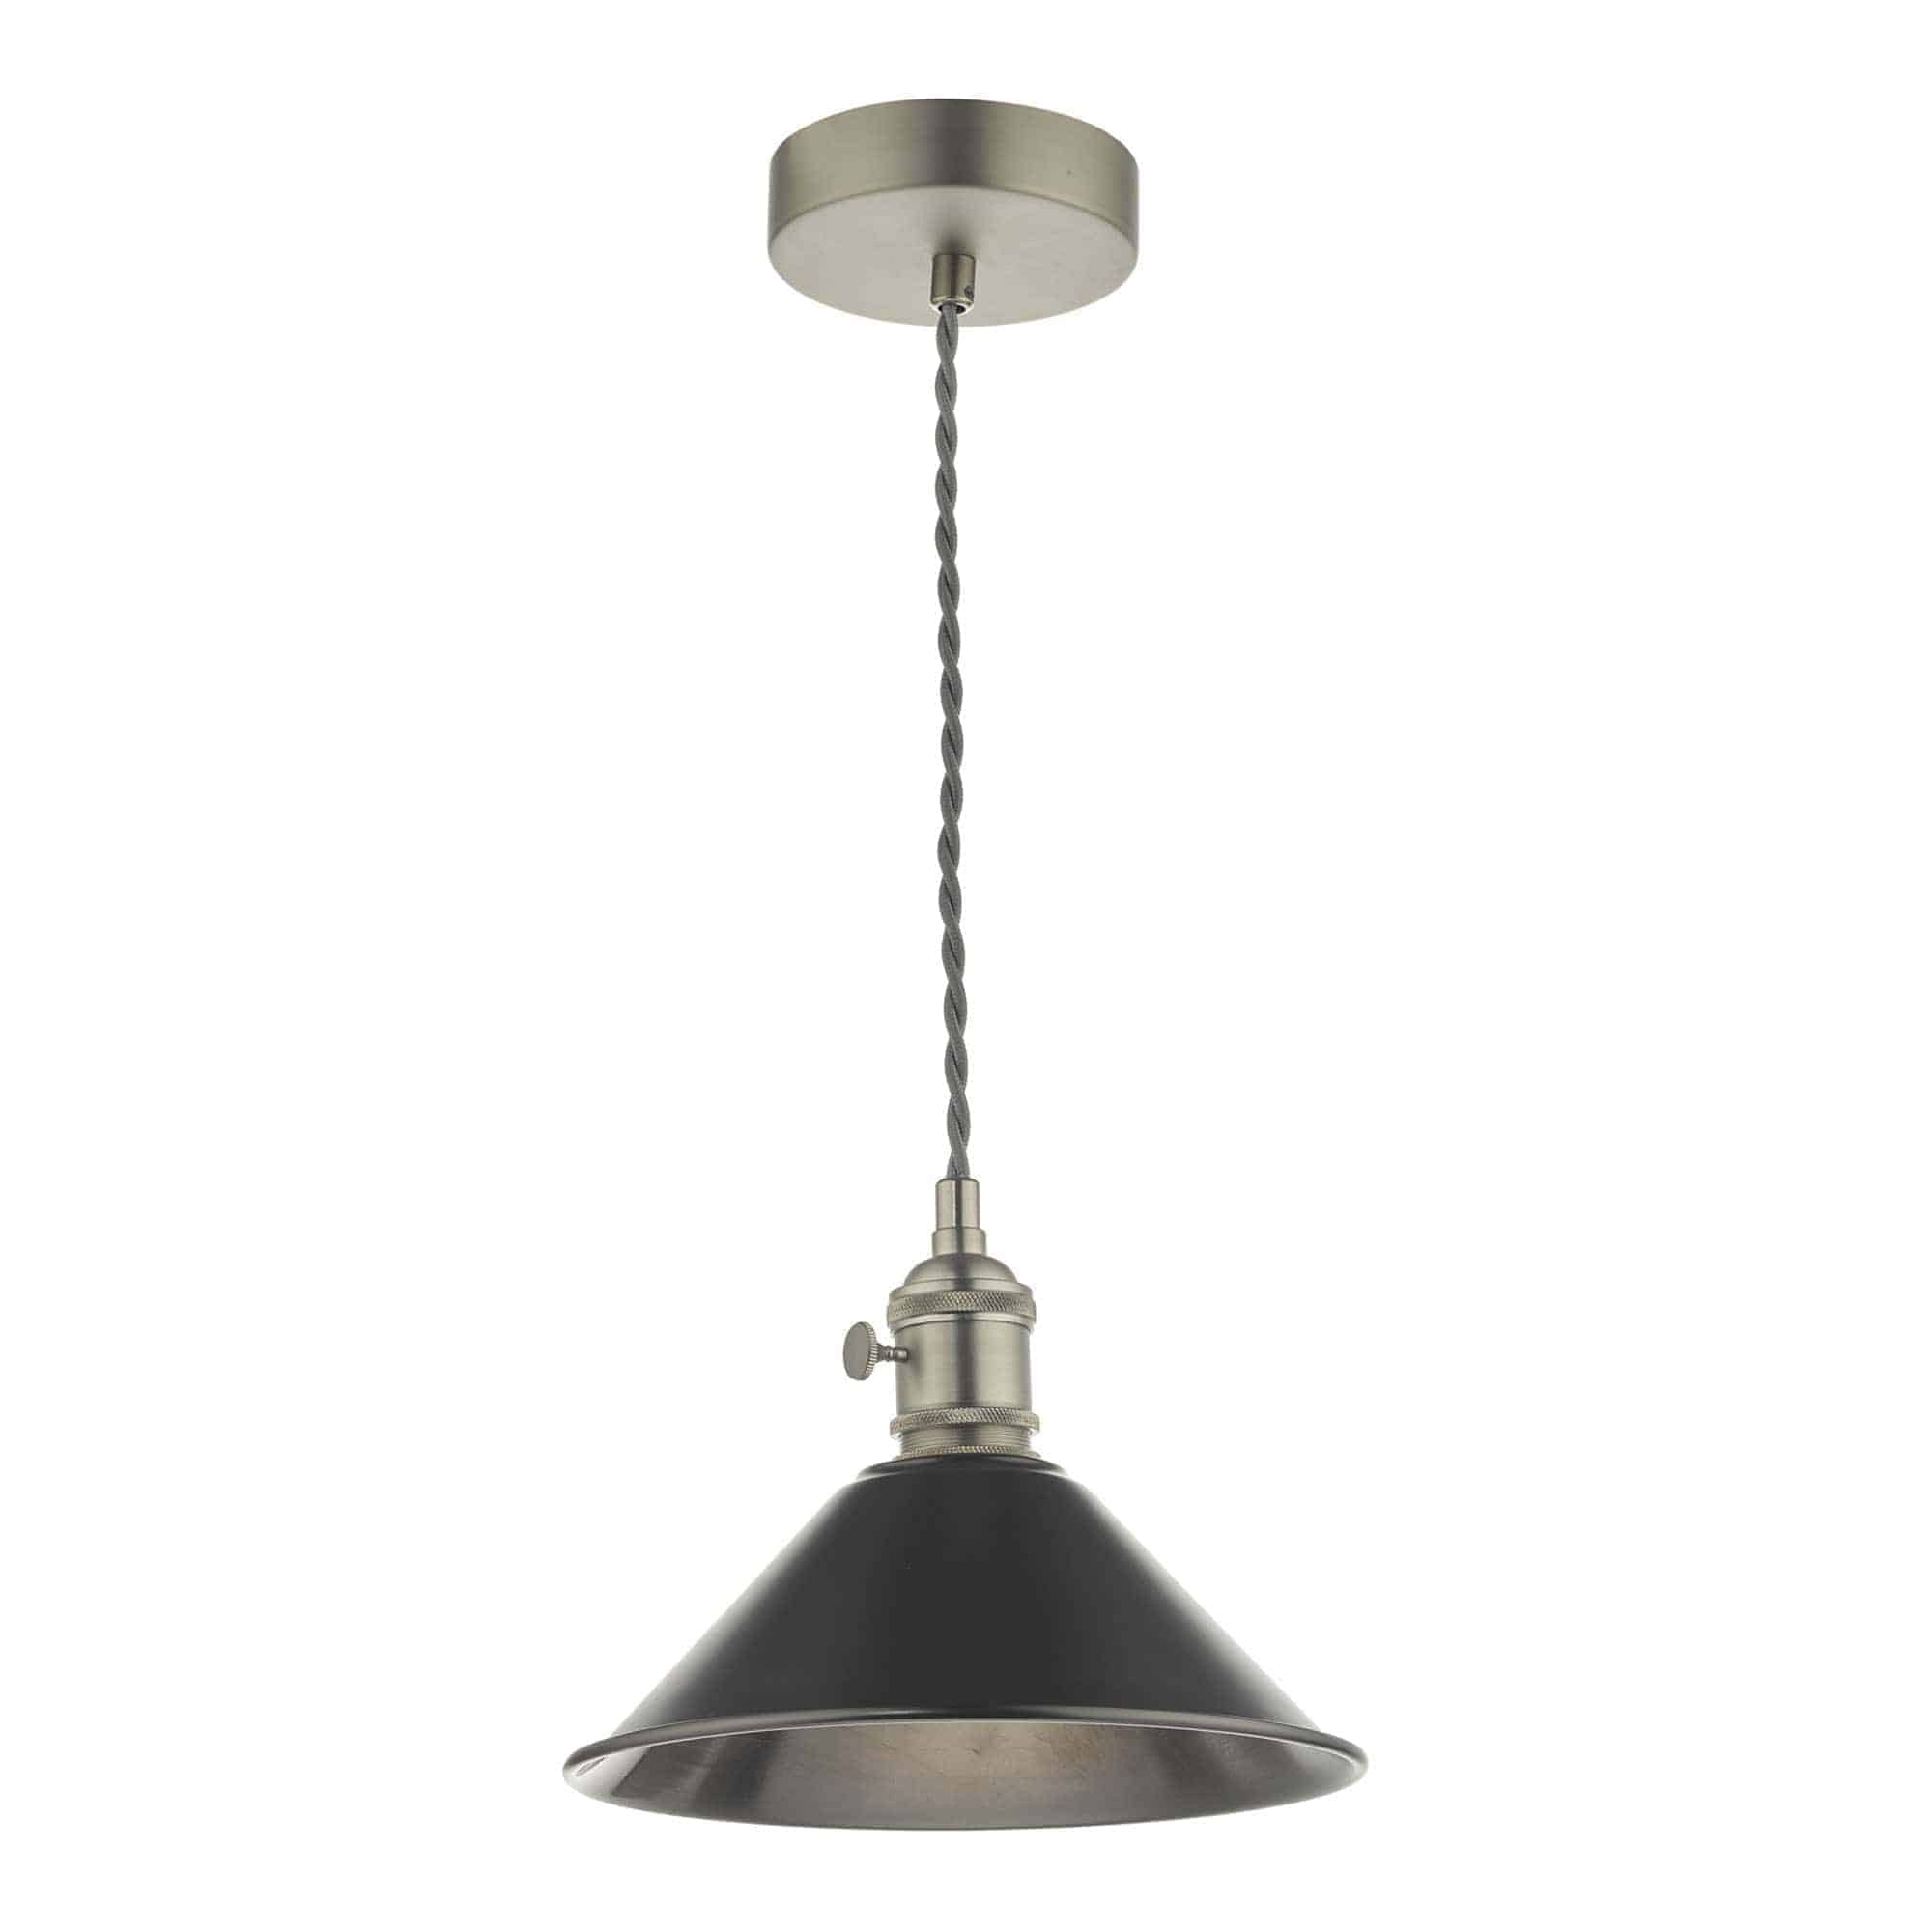 Dar HAD0161-02 Hadano 1 Light Pendant Antique Chrome With Antique Pewter Shade